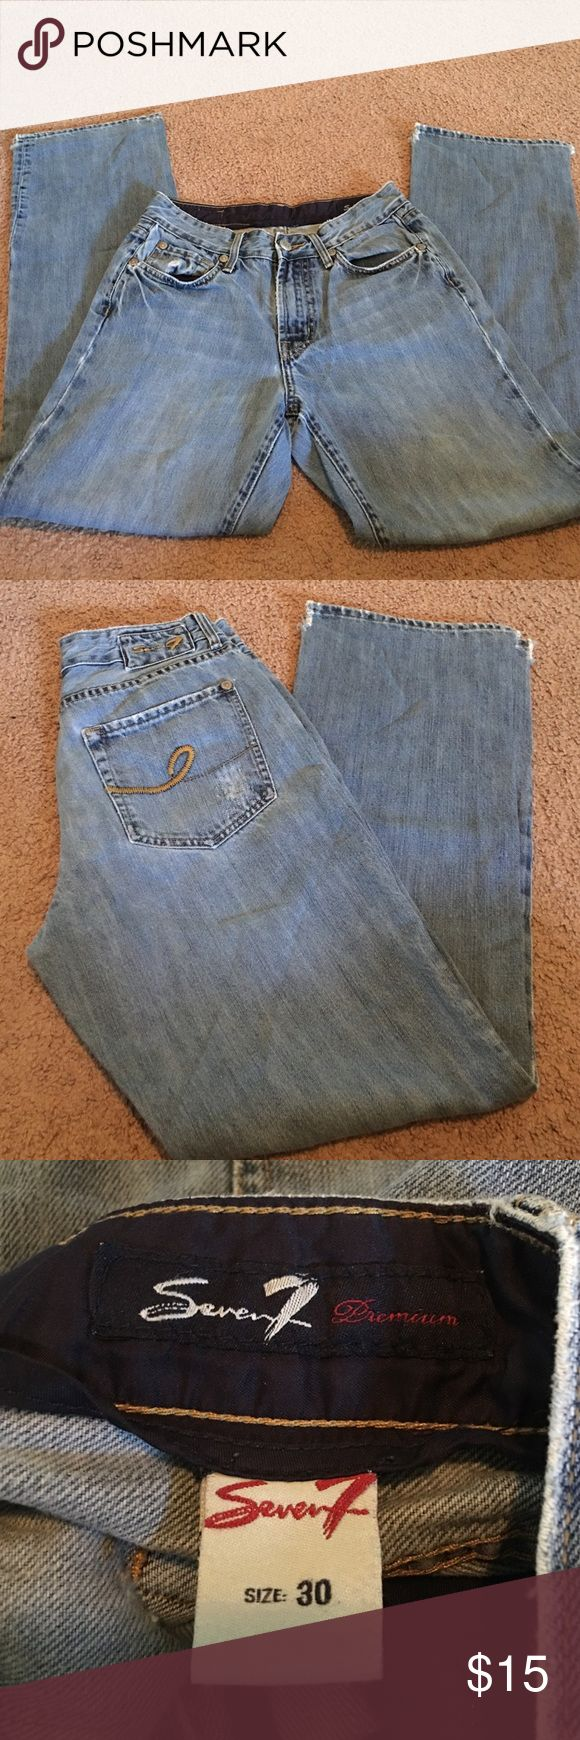 Men's Seven Jeans 30x31 Excellent Condition Awesome pair of men's Seven Jeans Size 30 Waist with inseam of 31 bottom of pant legs have sides cut a bit to fit over boots Seven7 Jeans Bootcut